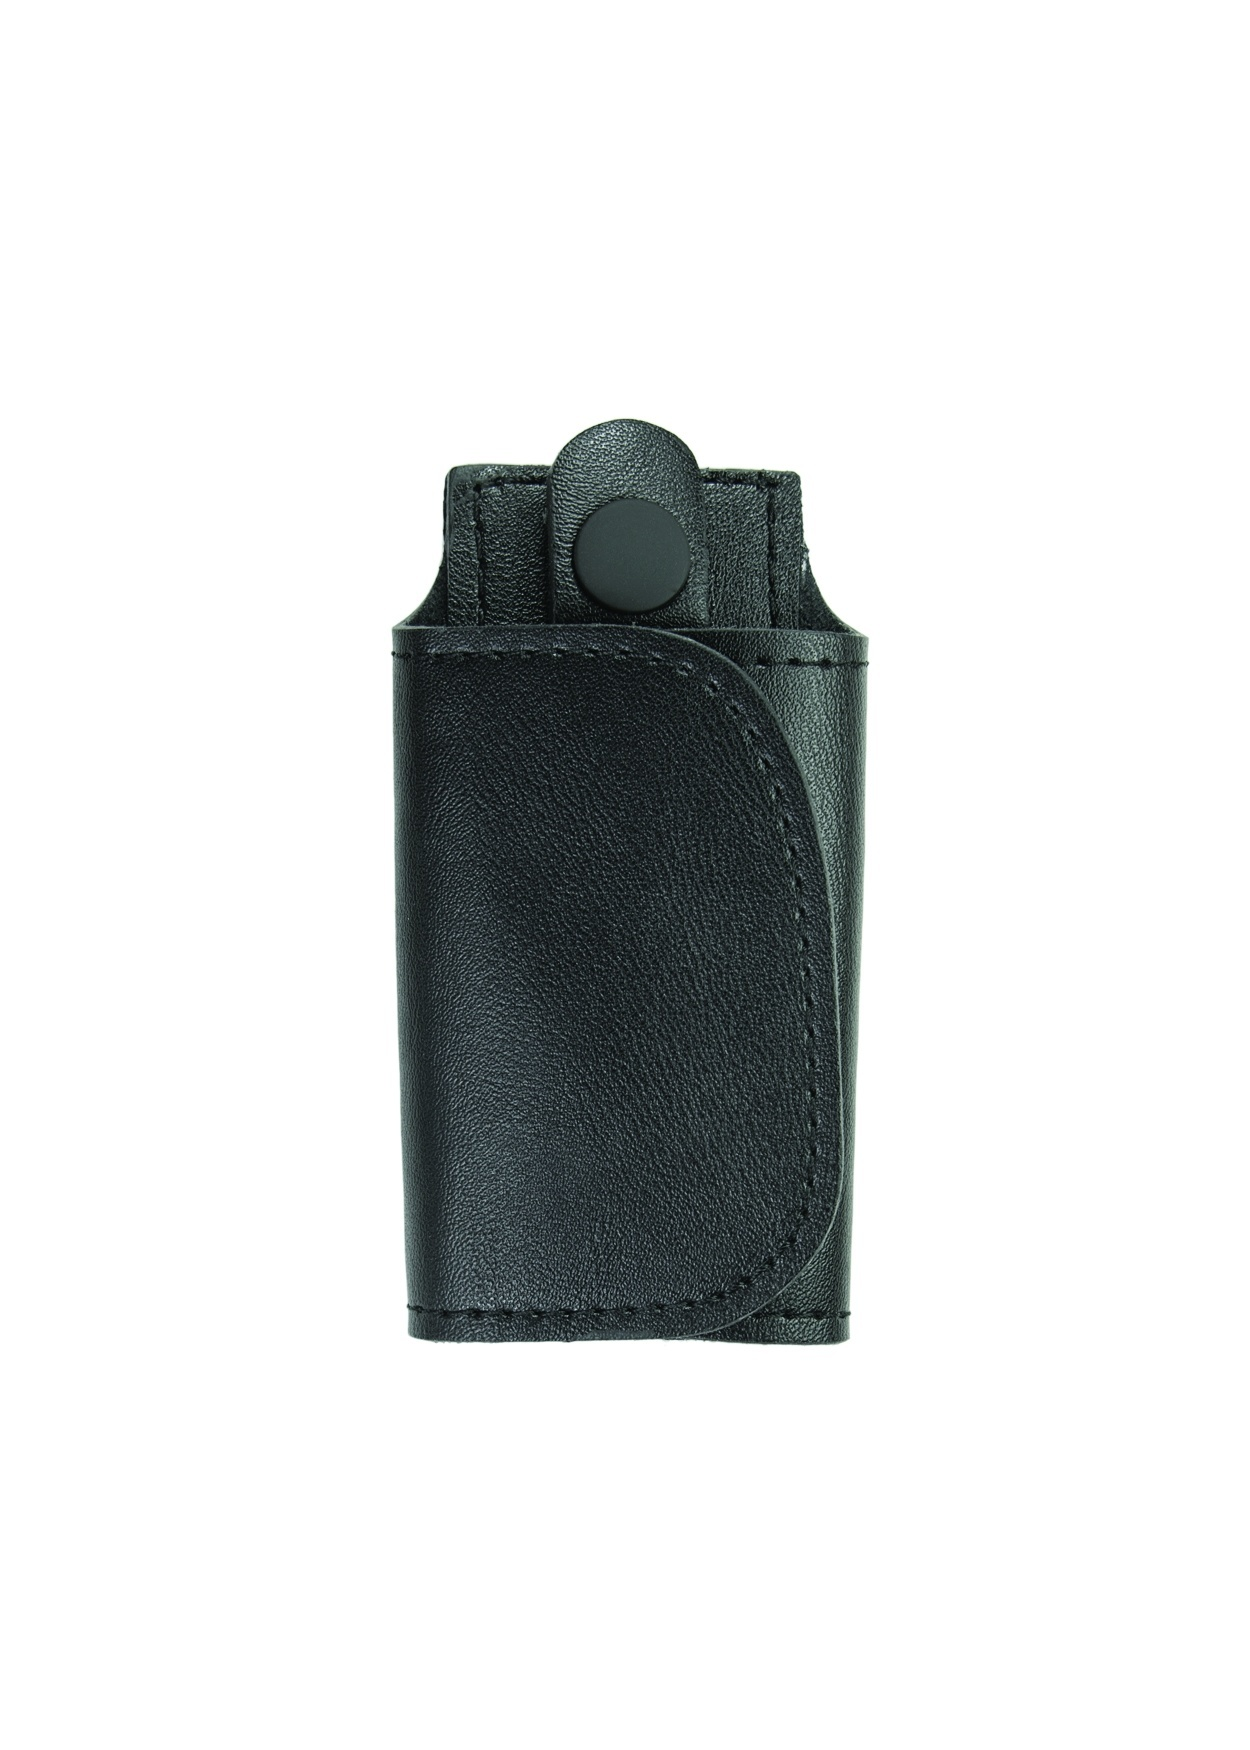 Key Holder, Silent, AirTek, Smooth, Black Snap-